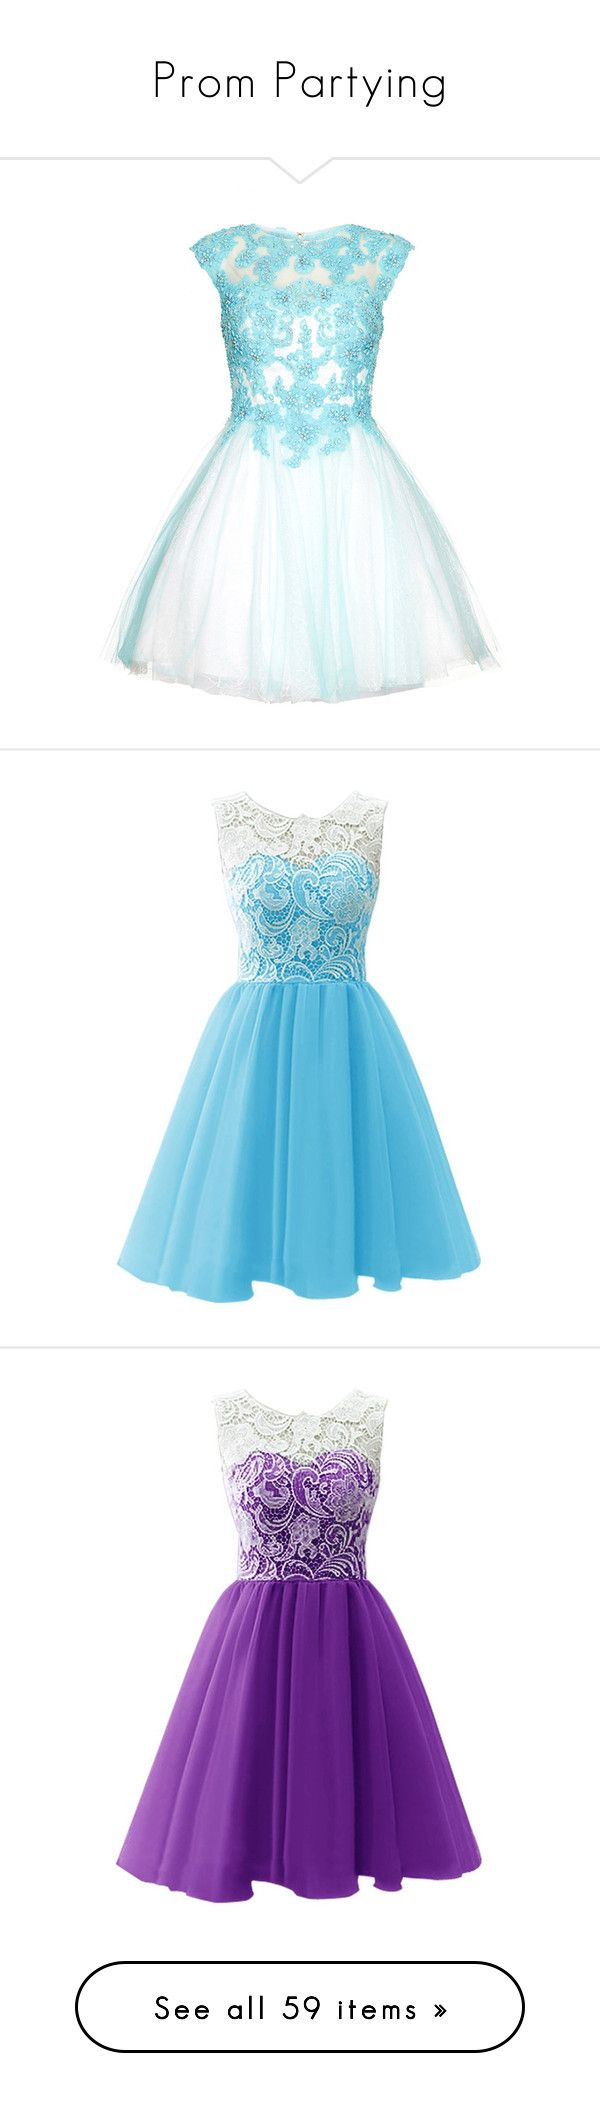 """""""Prom Partying"""" by cammms ❤ liked on Polyvore featuring dresses, vestidos, short dresses, lace cocktail dress, short prom dresses, beaded cocktail dress, aqua blue dress, lace dress, blue and long dresses"""